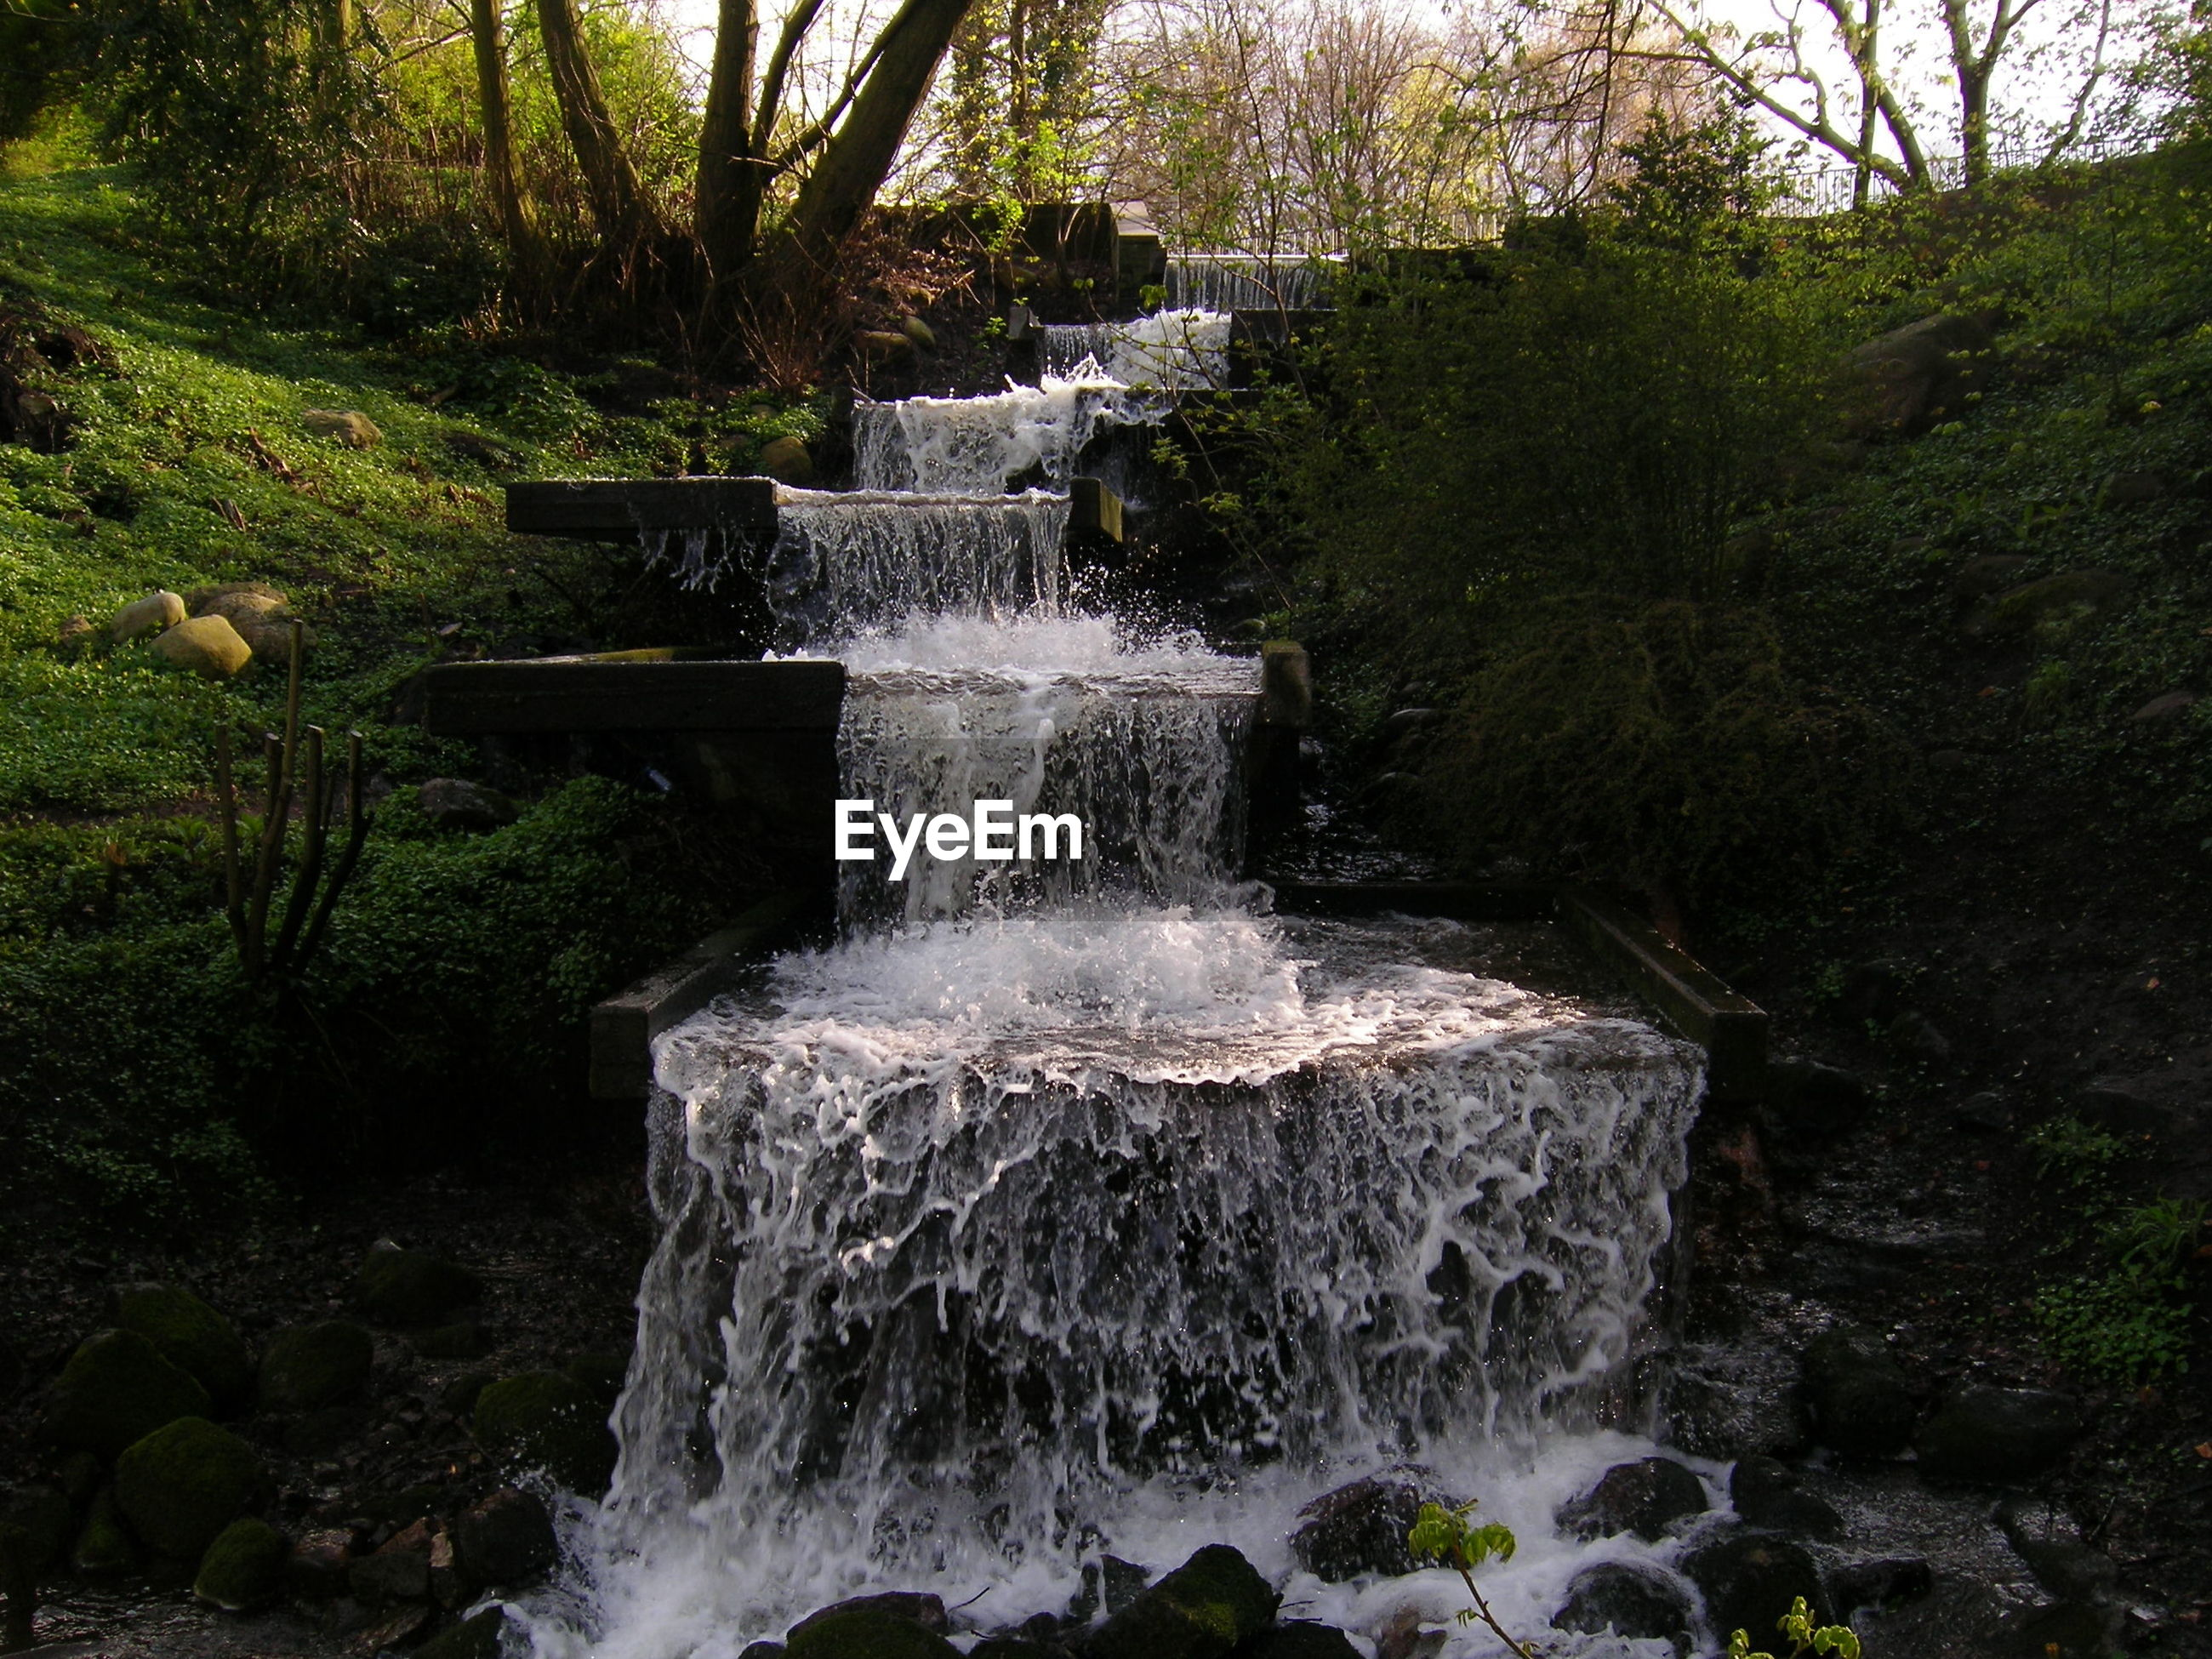 Low angle view of waterfall against trees in forest